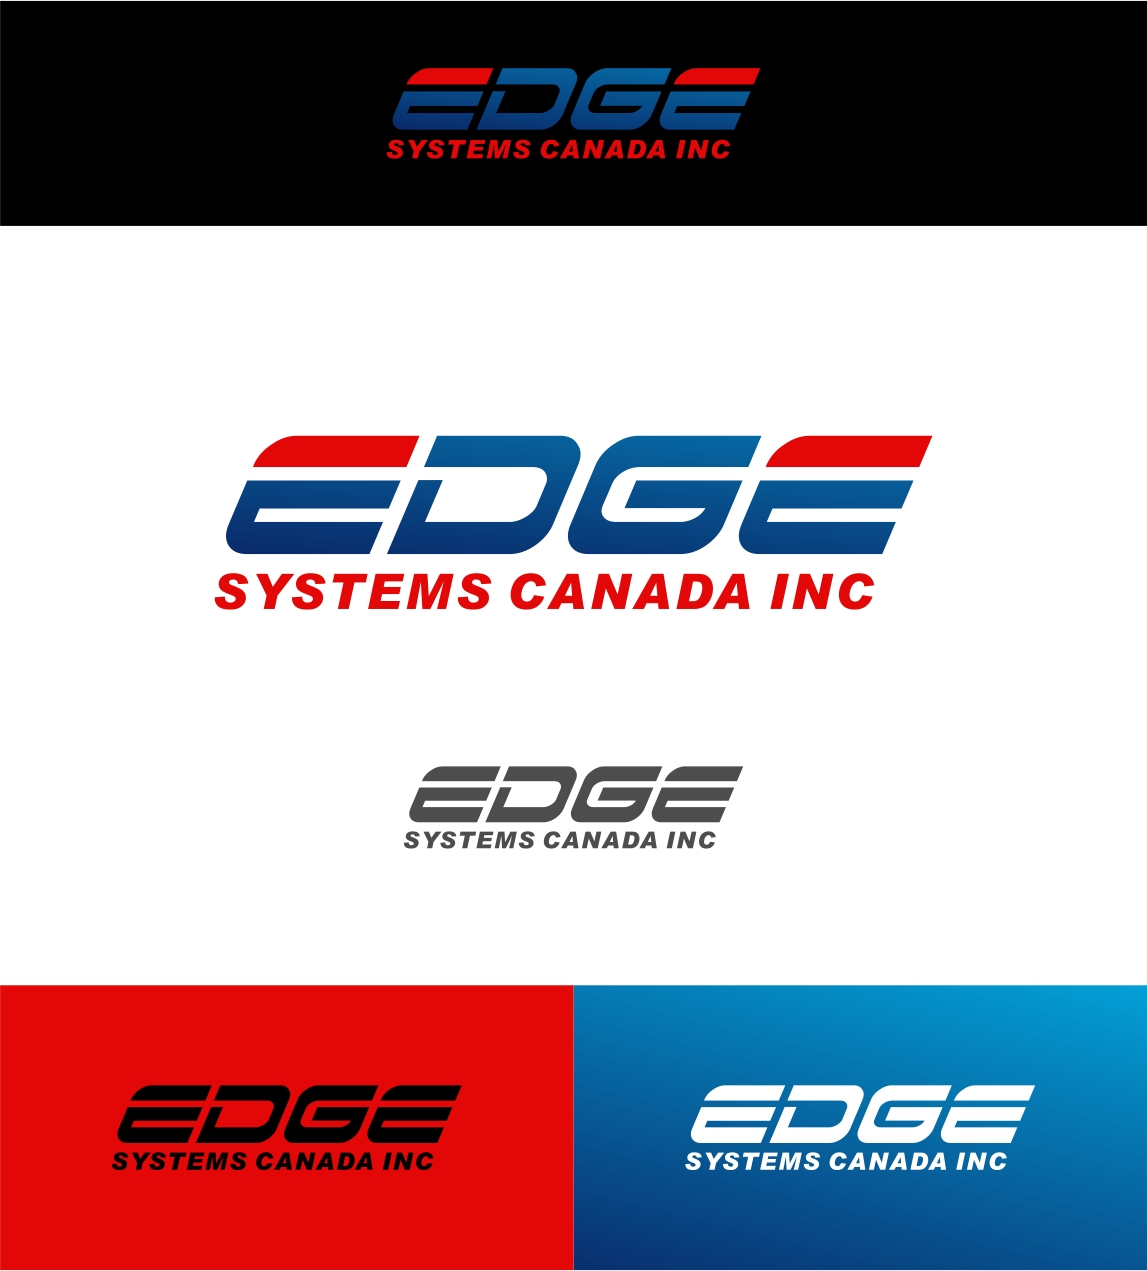 Logo Design by haidu - Entry No. 48 in the Logo Design Contest New Logo Design for Edge Systems Canada Inc.